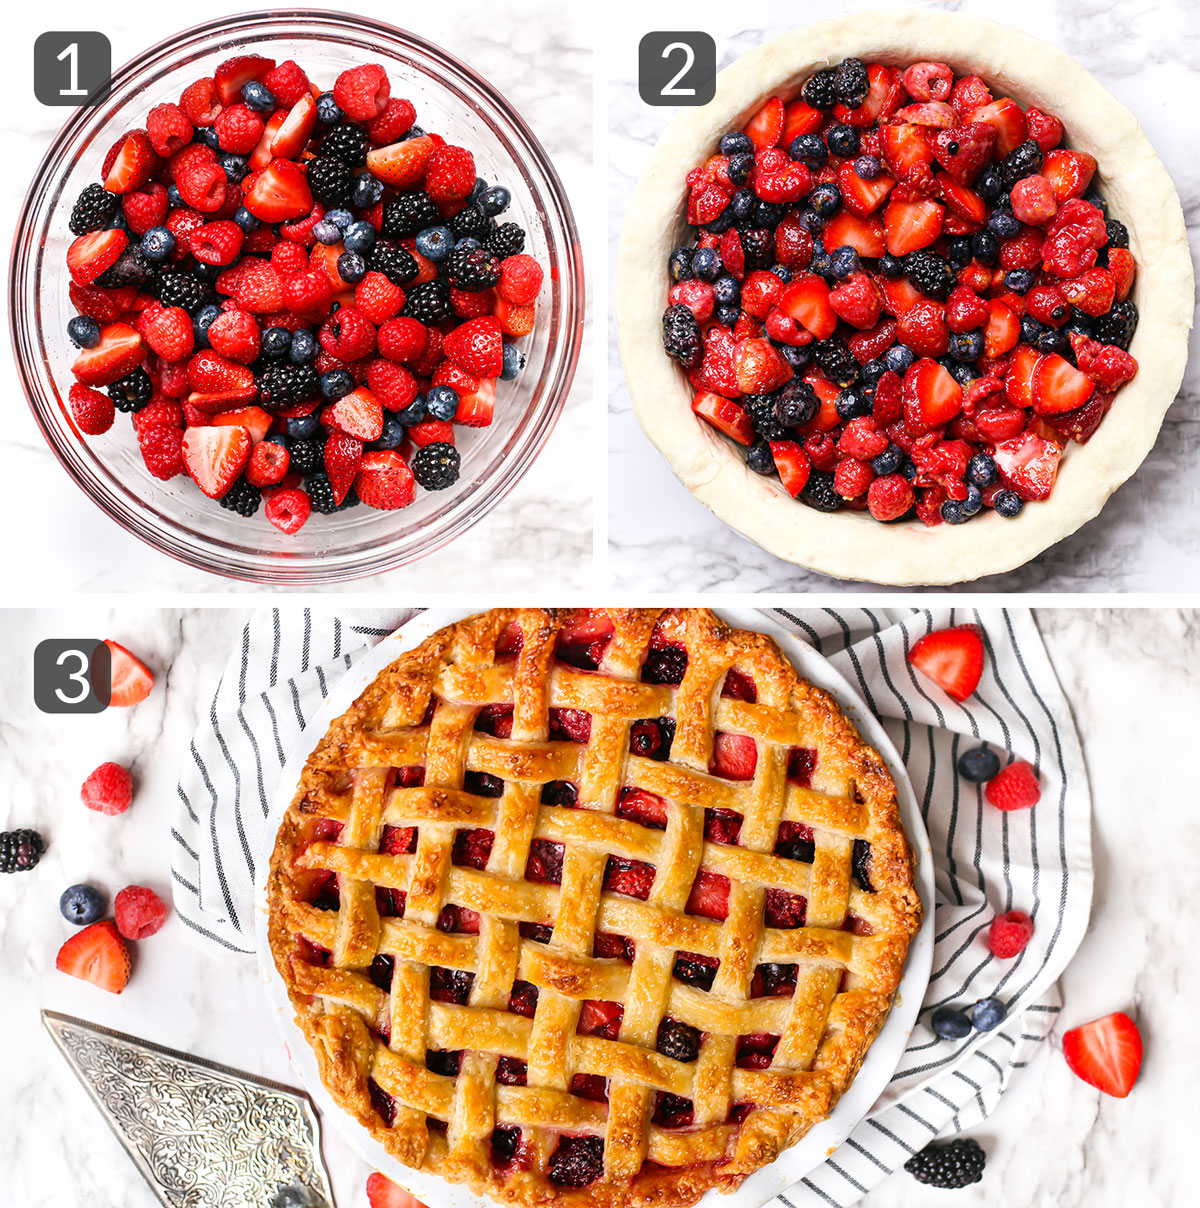 step photos showing how to make berry pie filling